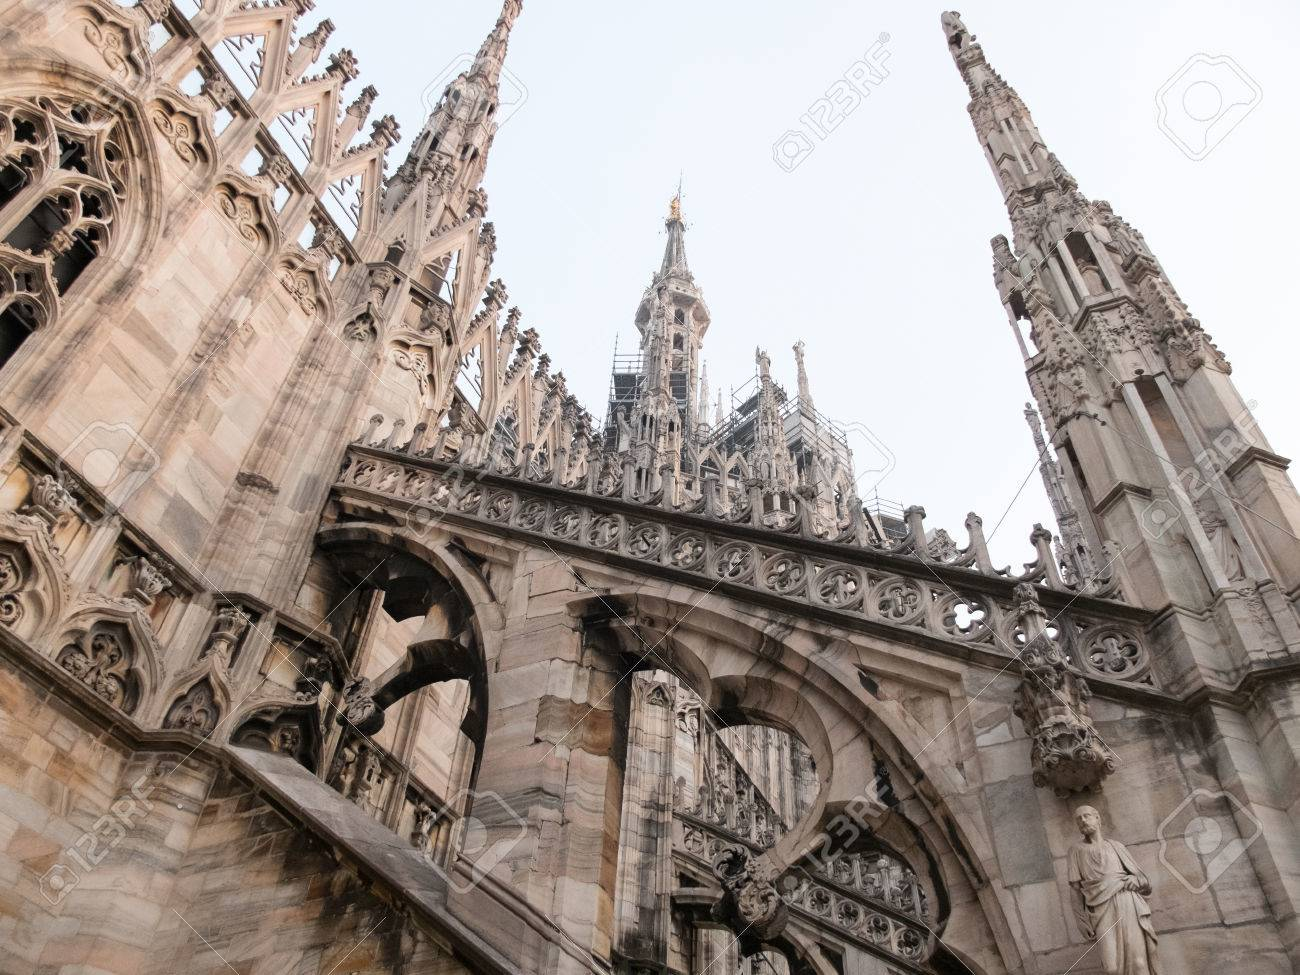 Low Angle Architectural Detail Of Italian Gothic Flying Buttresses And Spires Historic Milan Cathedral Church